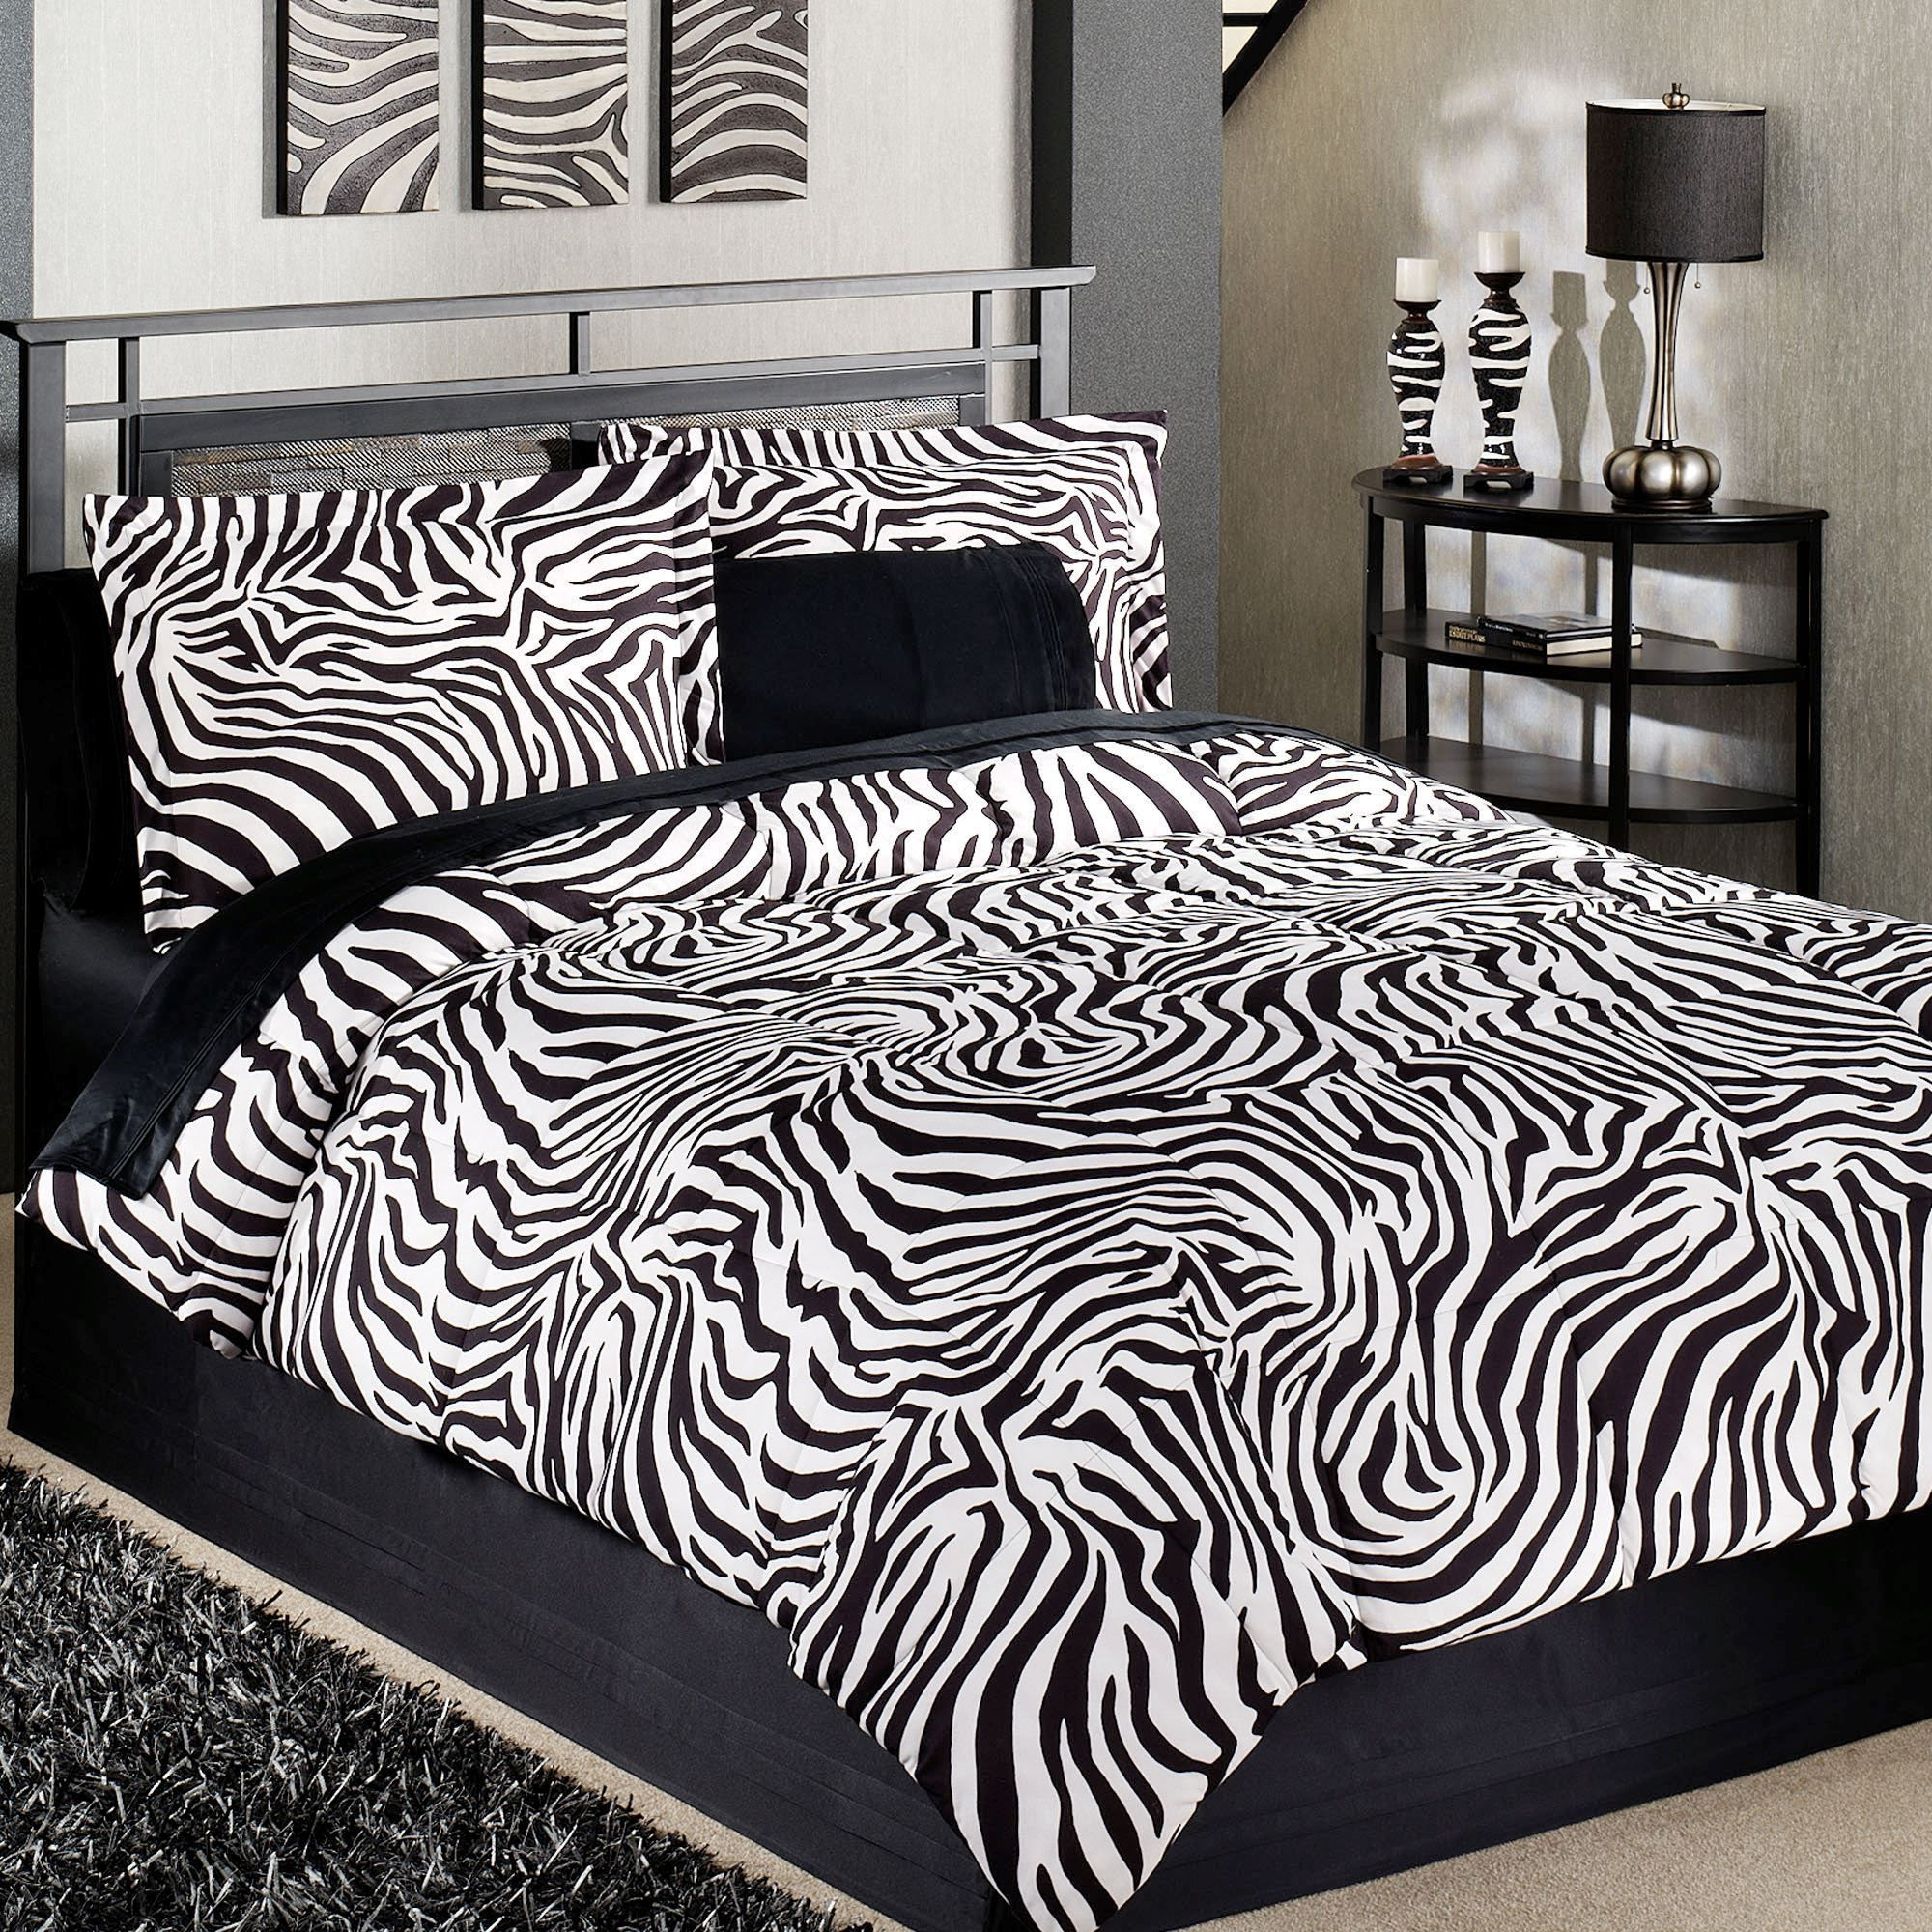 Animal Theme Decoration with Zebra Print Bedroom | Smart Home ...